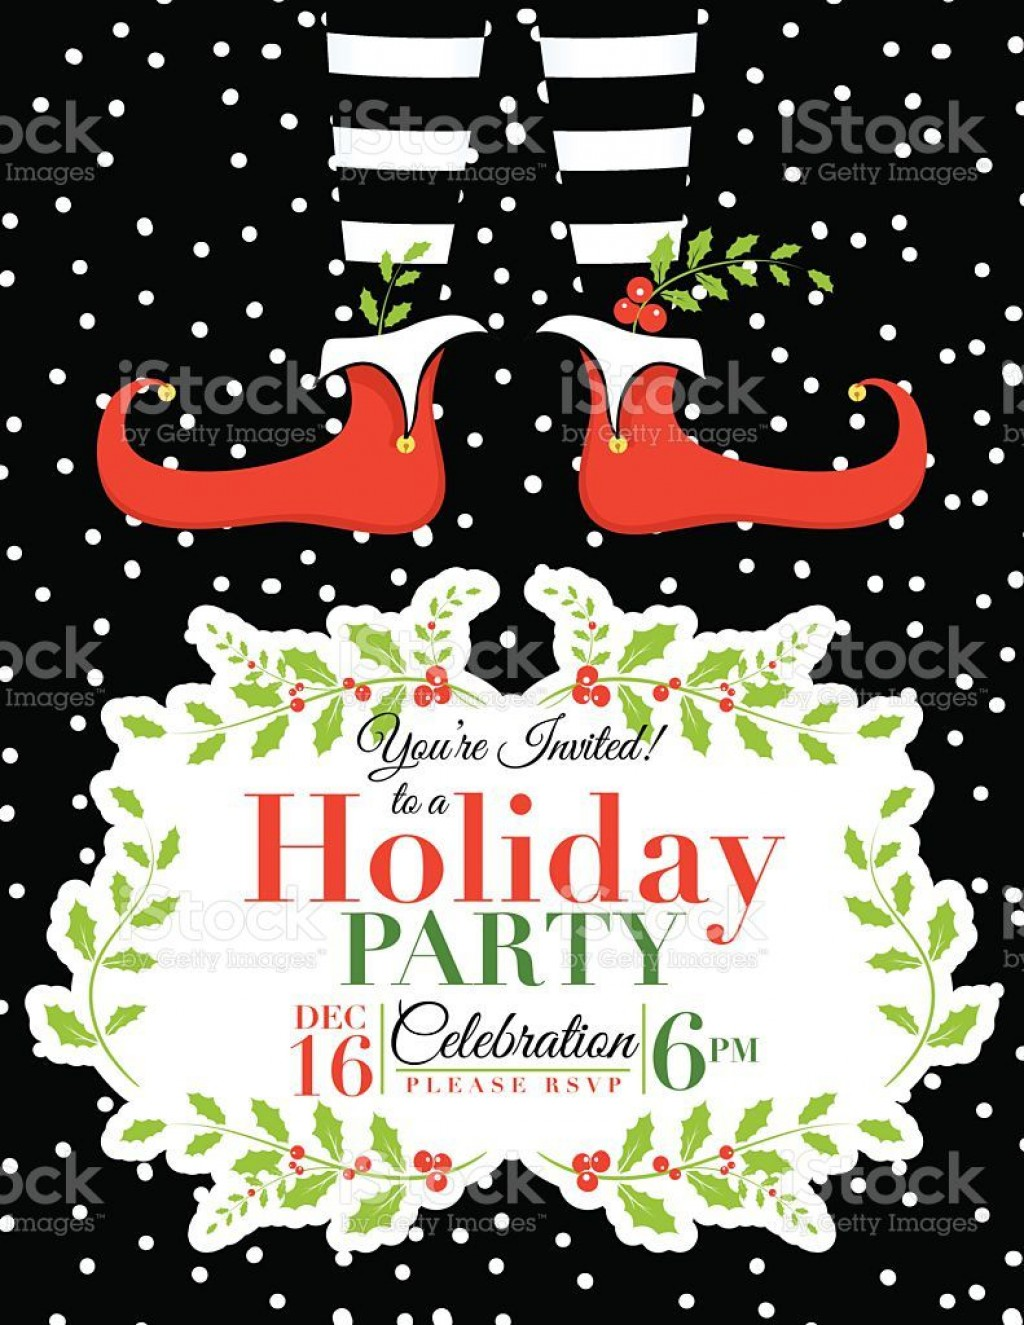 007 Wonderful Holiday Party Invitation Template Free Example  Elegant Christma Download Dinner Printable AustraliaLarge